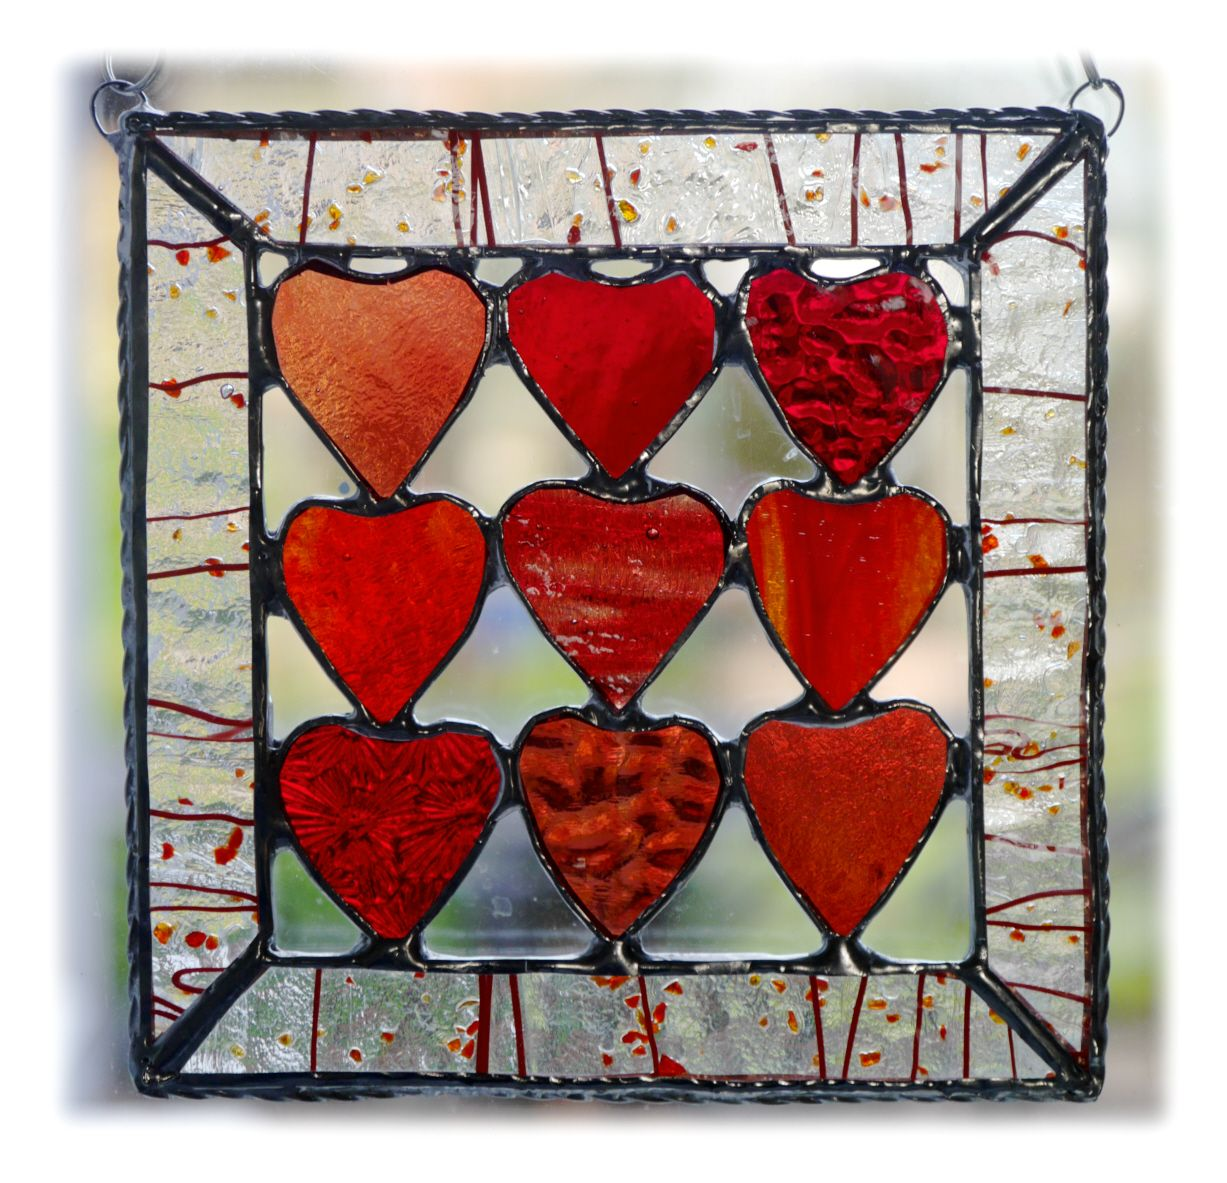 RED Hearts 9 Framed 014 reds #1905 FREE 17.50